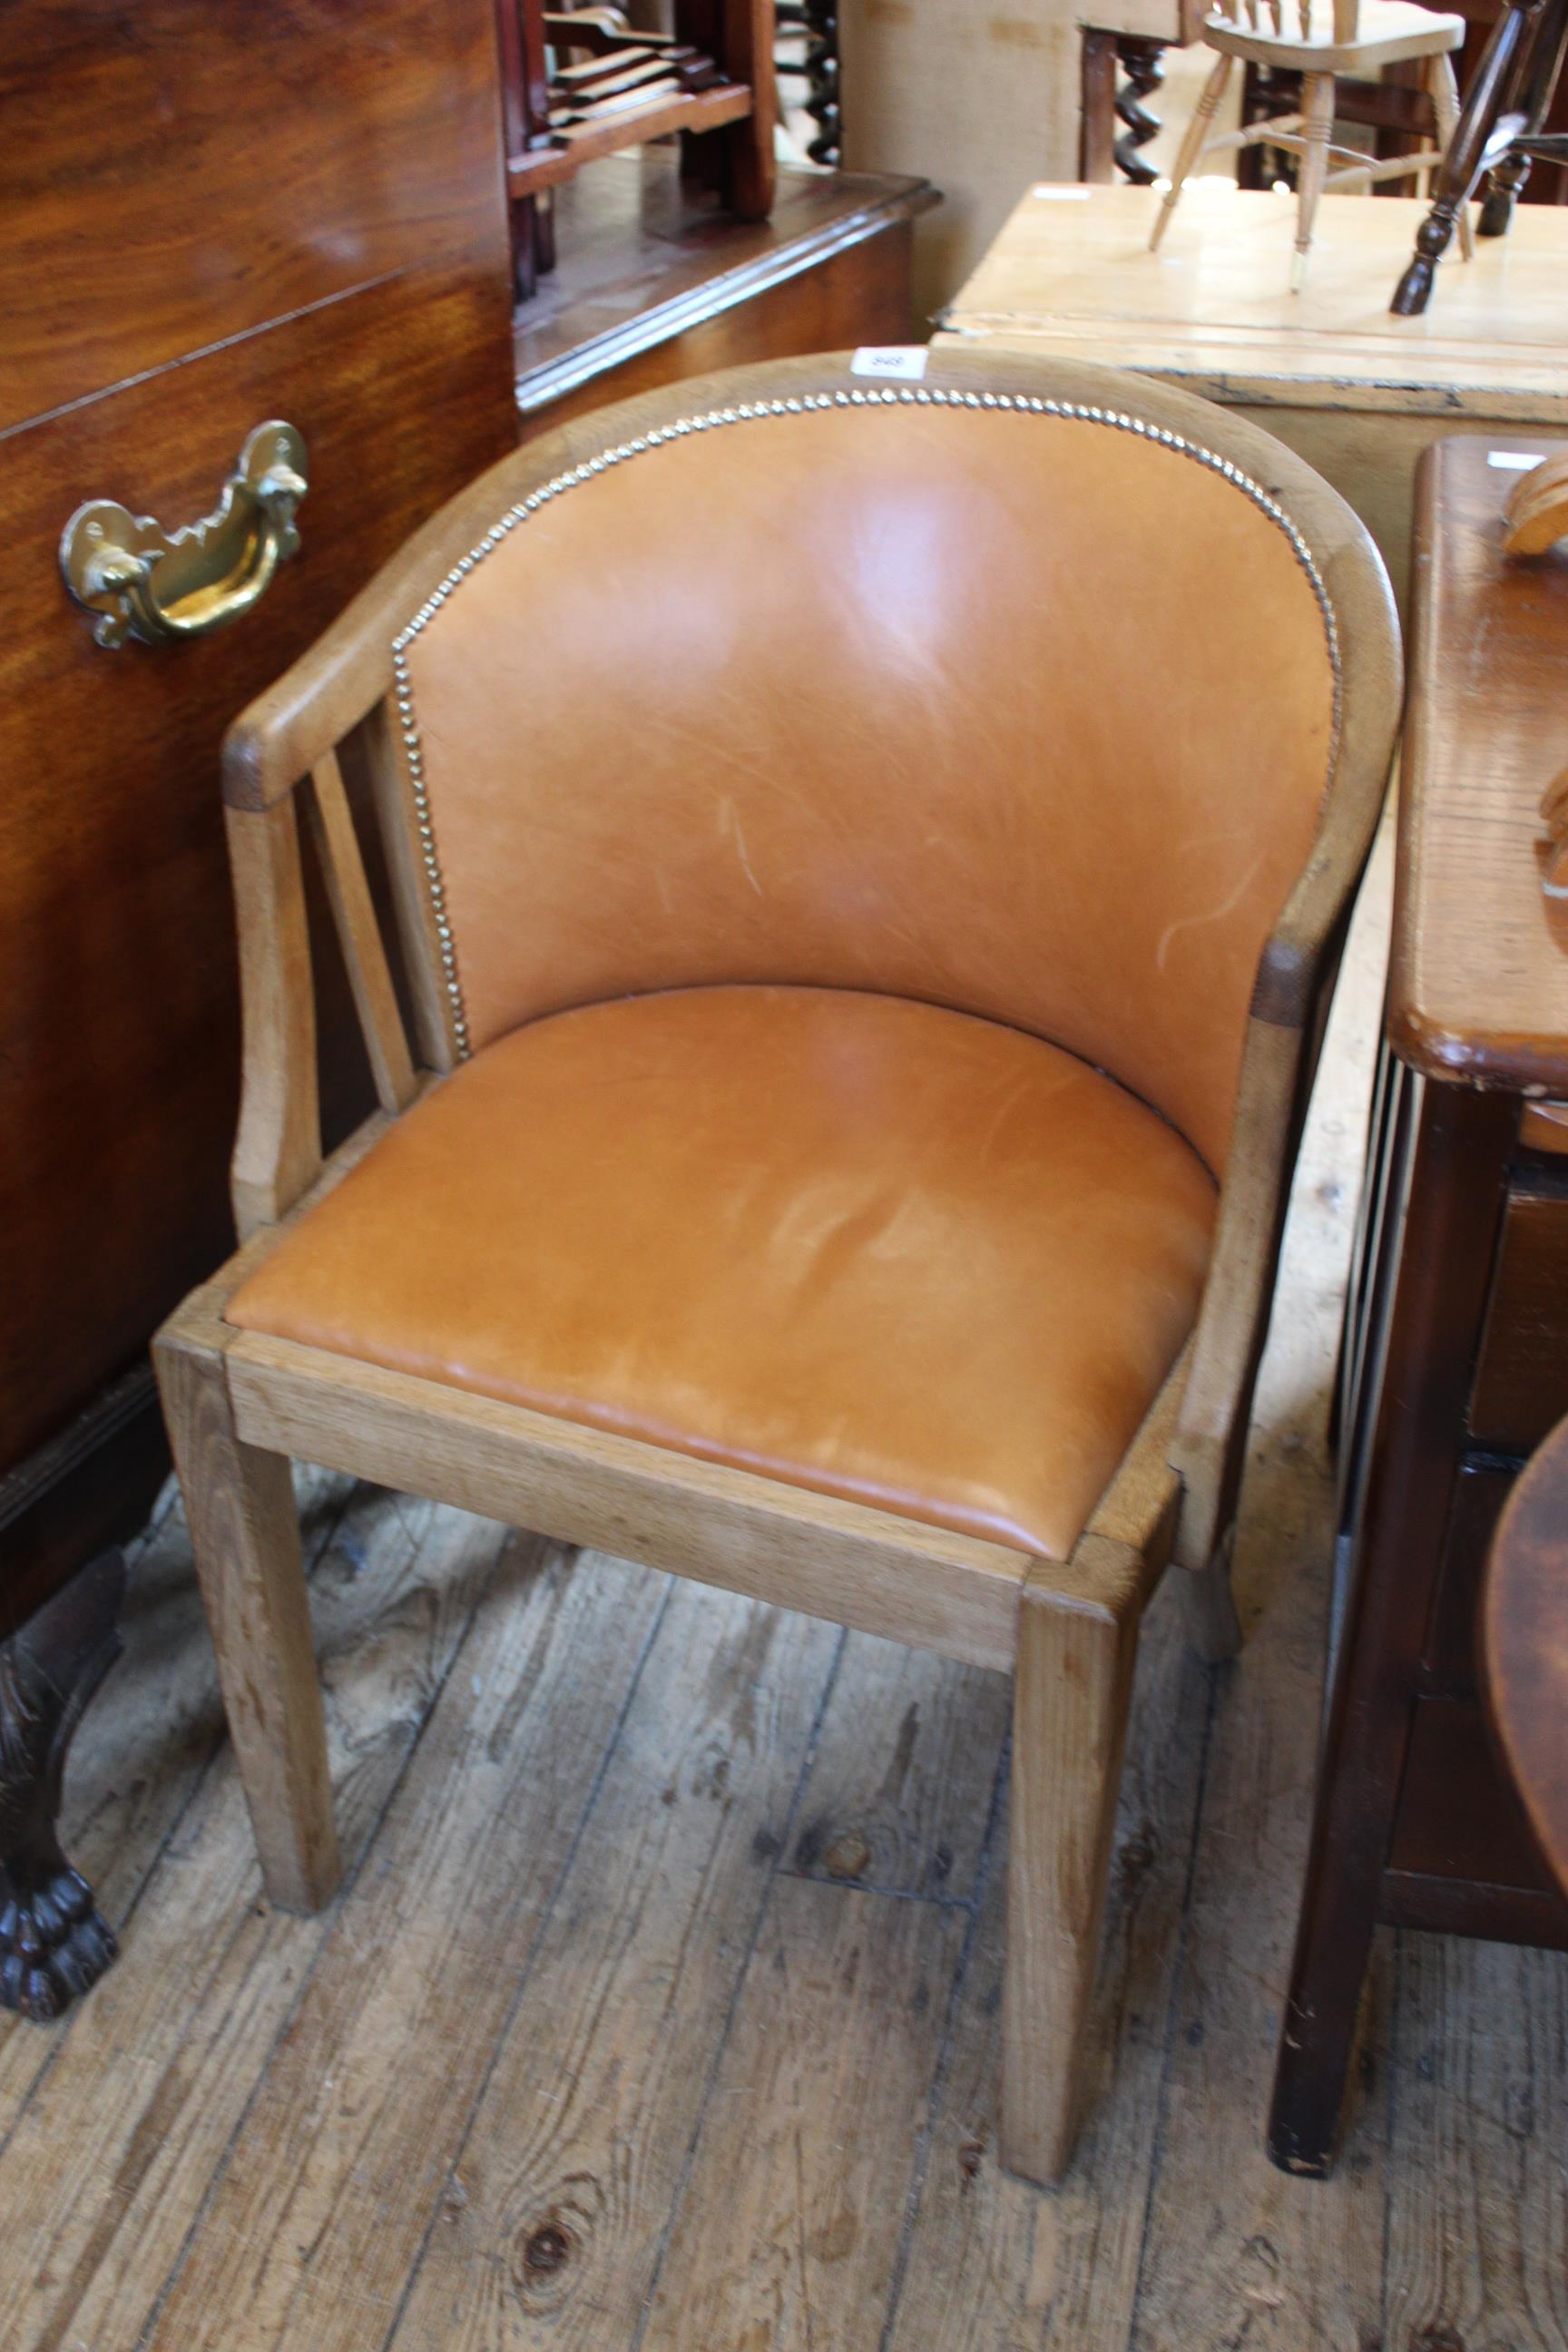 A 1930's oak framed leather covered desk chair